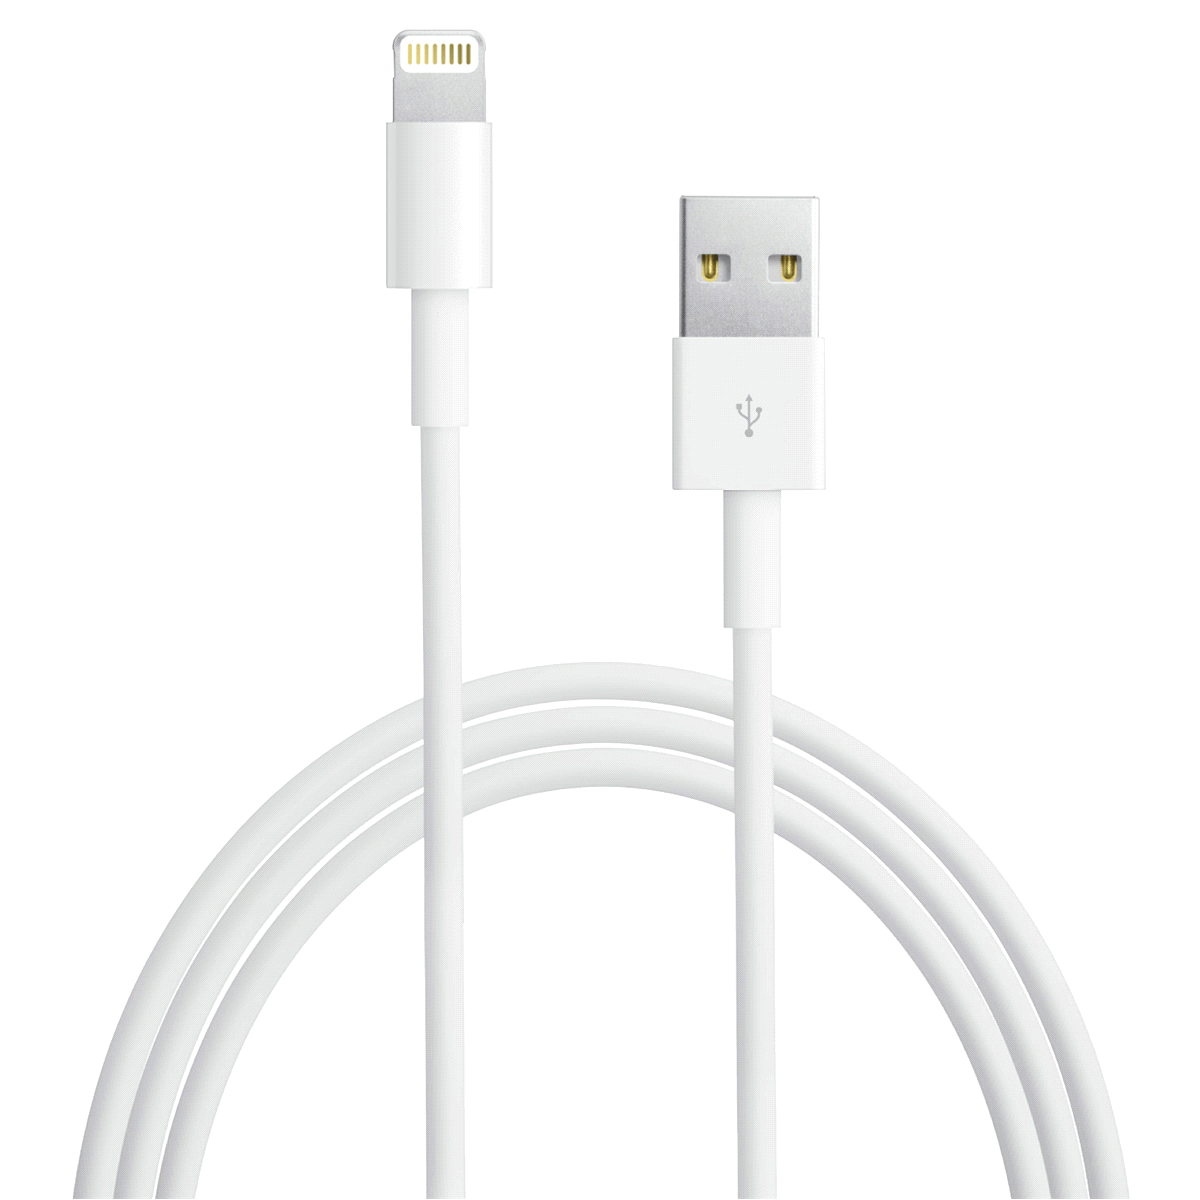 Certified Lightning USB Cable - 6 Feet